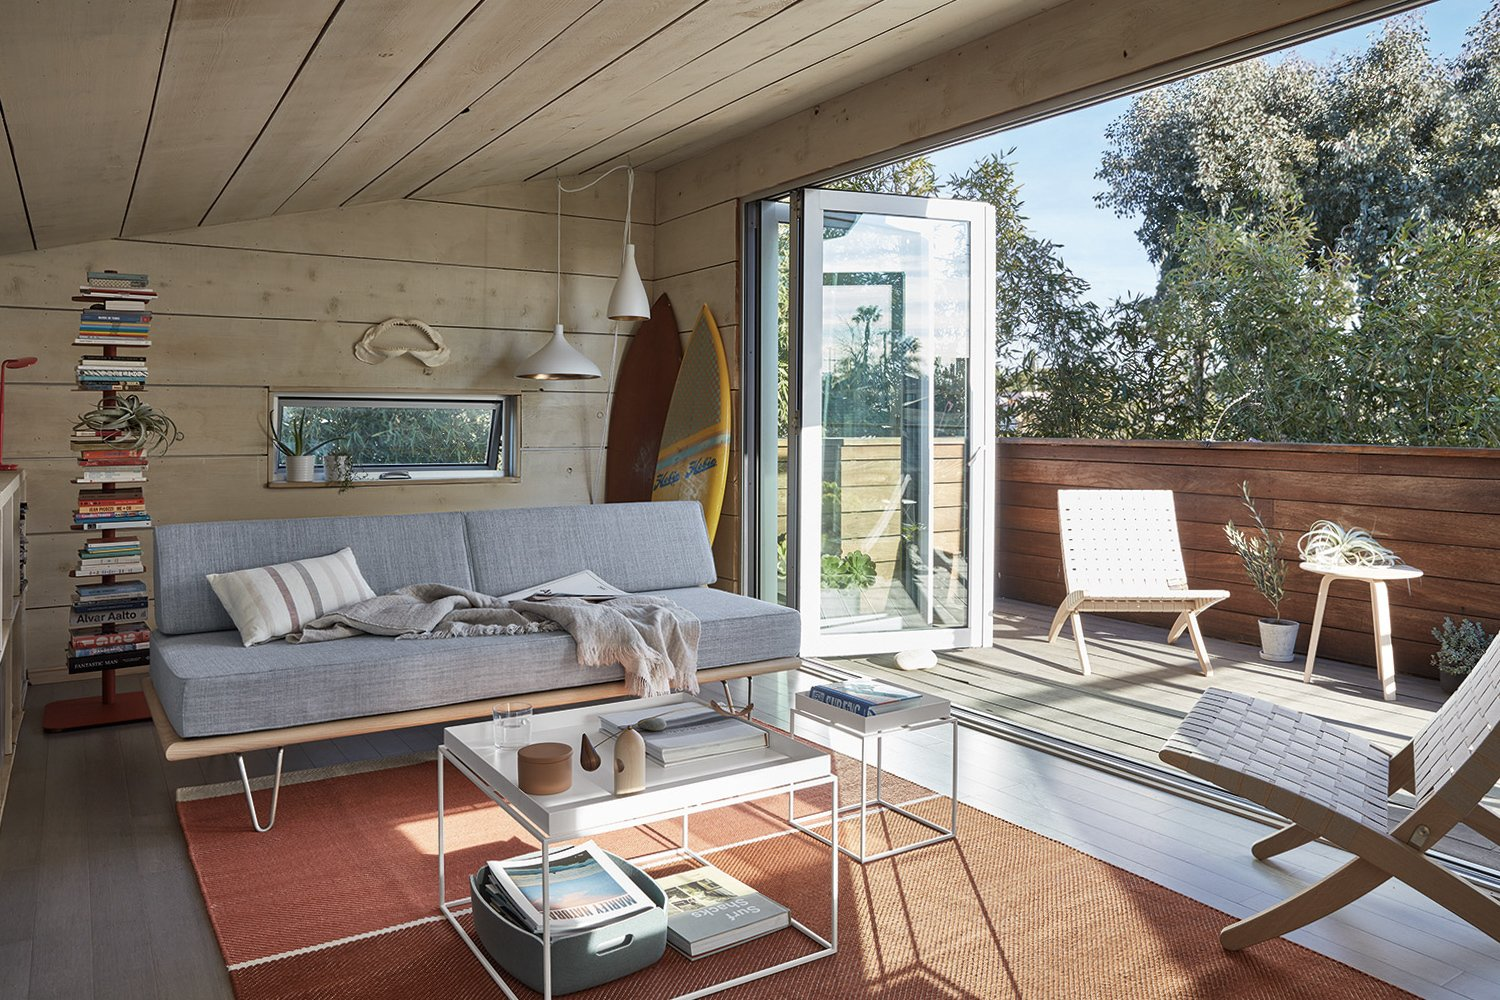 """Inside the studio, bi-folding doors connect the balcony to a loft area. W<span style=""""font-family: Theinhardt, -apple-system, BlinkMacSystemFont, &quot;Segoe UI&quot;, Roboto, Oxygen-Sans, Ubuntu, Cantarell, &quot;Helvetica Neue&quot;, sans-serif;"""">hite-washed cedar covers the walls and ceilings throughout the interior.</span>  Photo 2 of 17 in The """"Surf Shacks"""" Author Lists His Venice Bungalow and Backyard Guesthouse for $1.6M"""